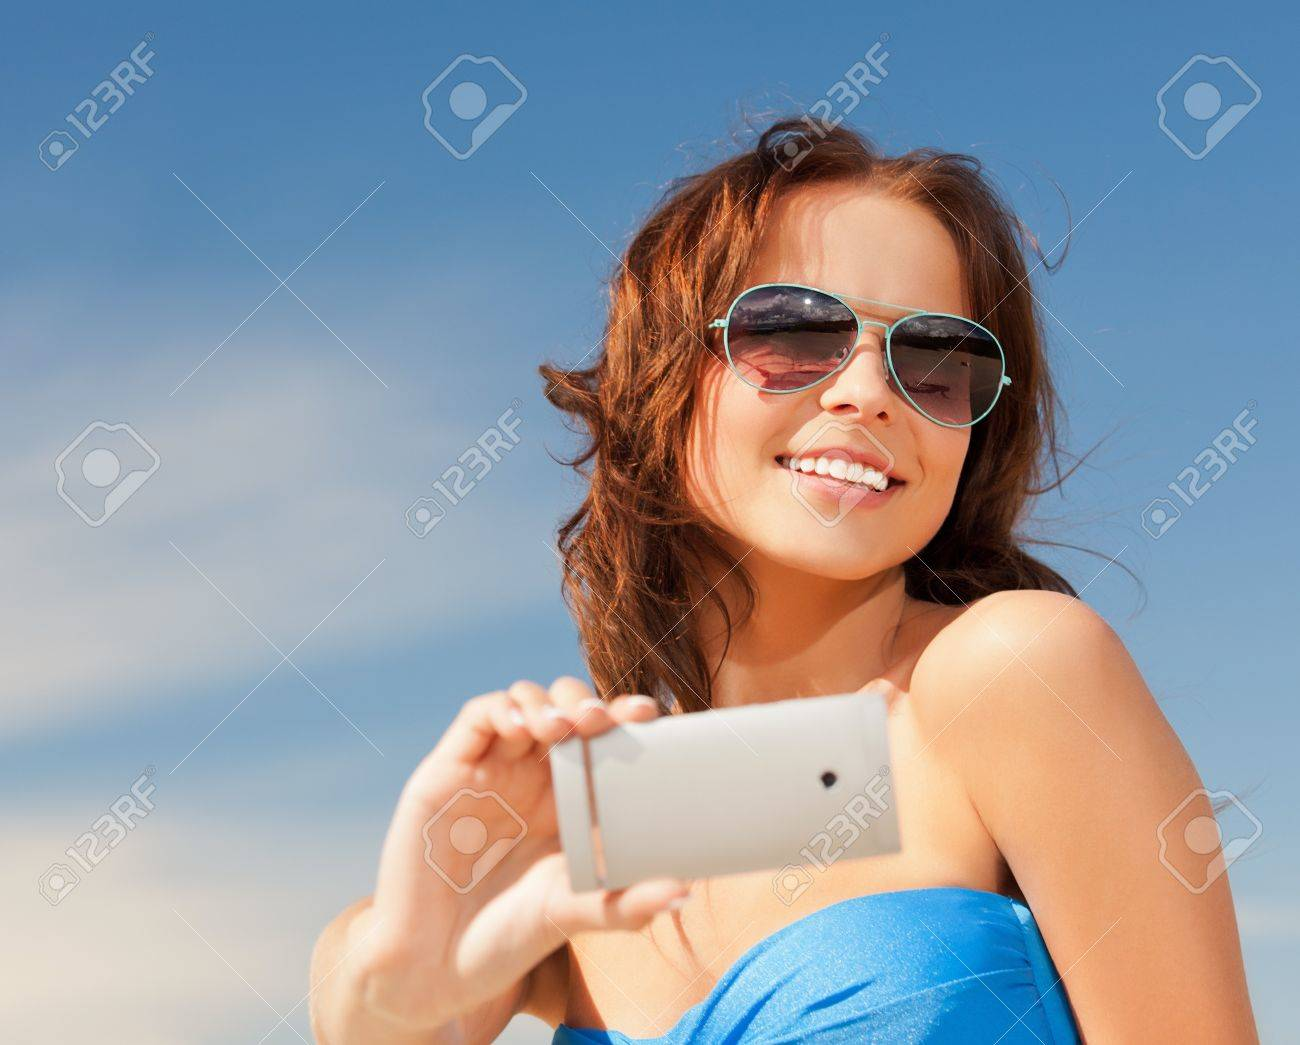 picture of happy smiling woman using phone camera Stock Photo - 14759809